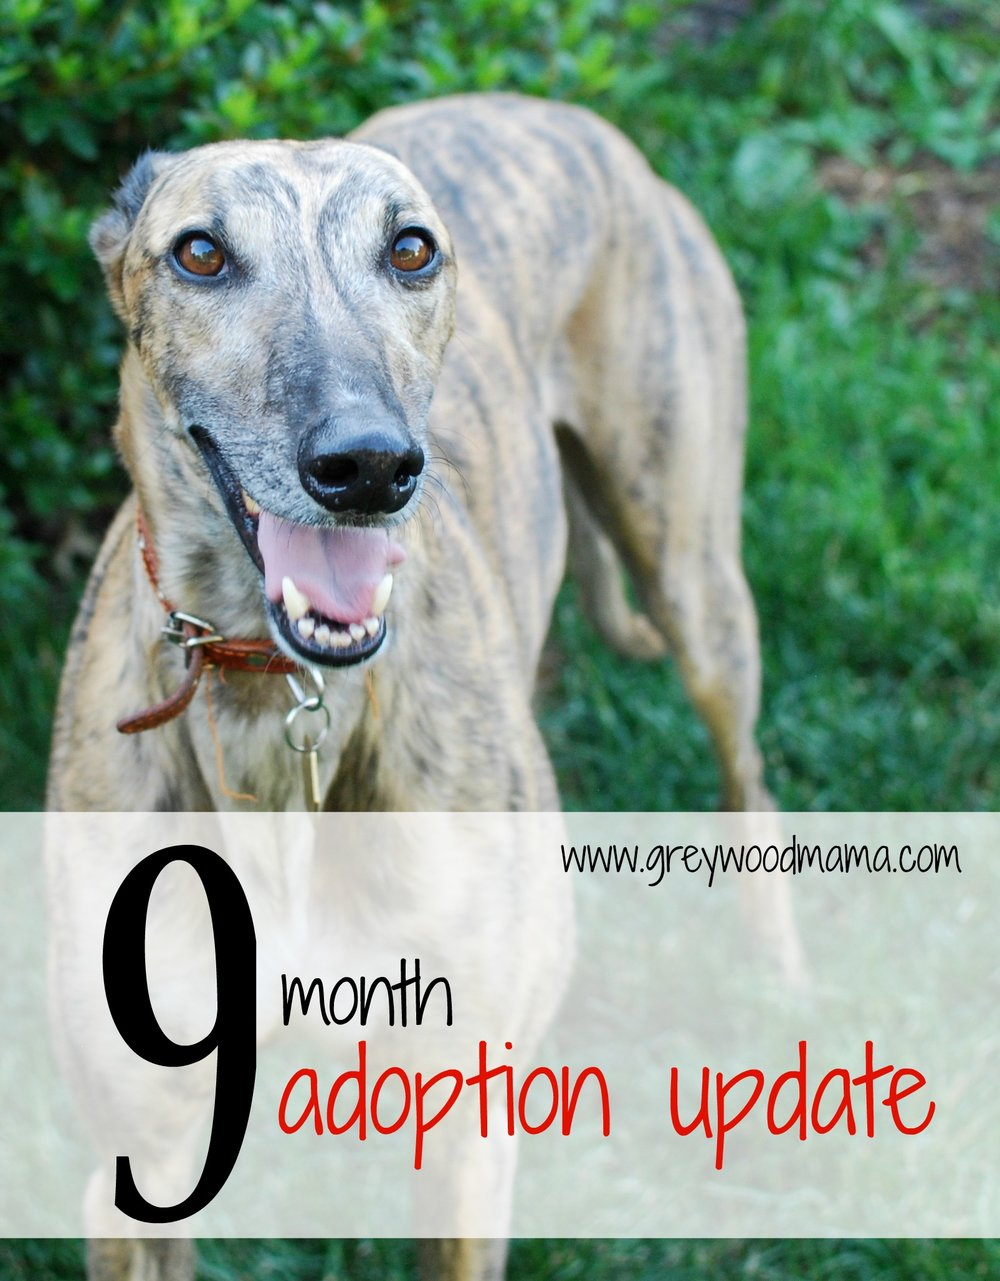 9month_adoption-update.jpg